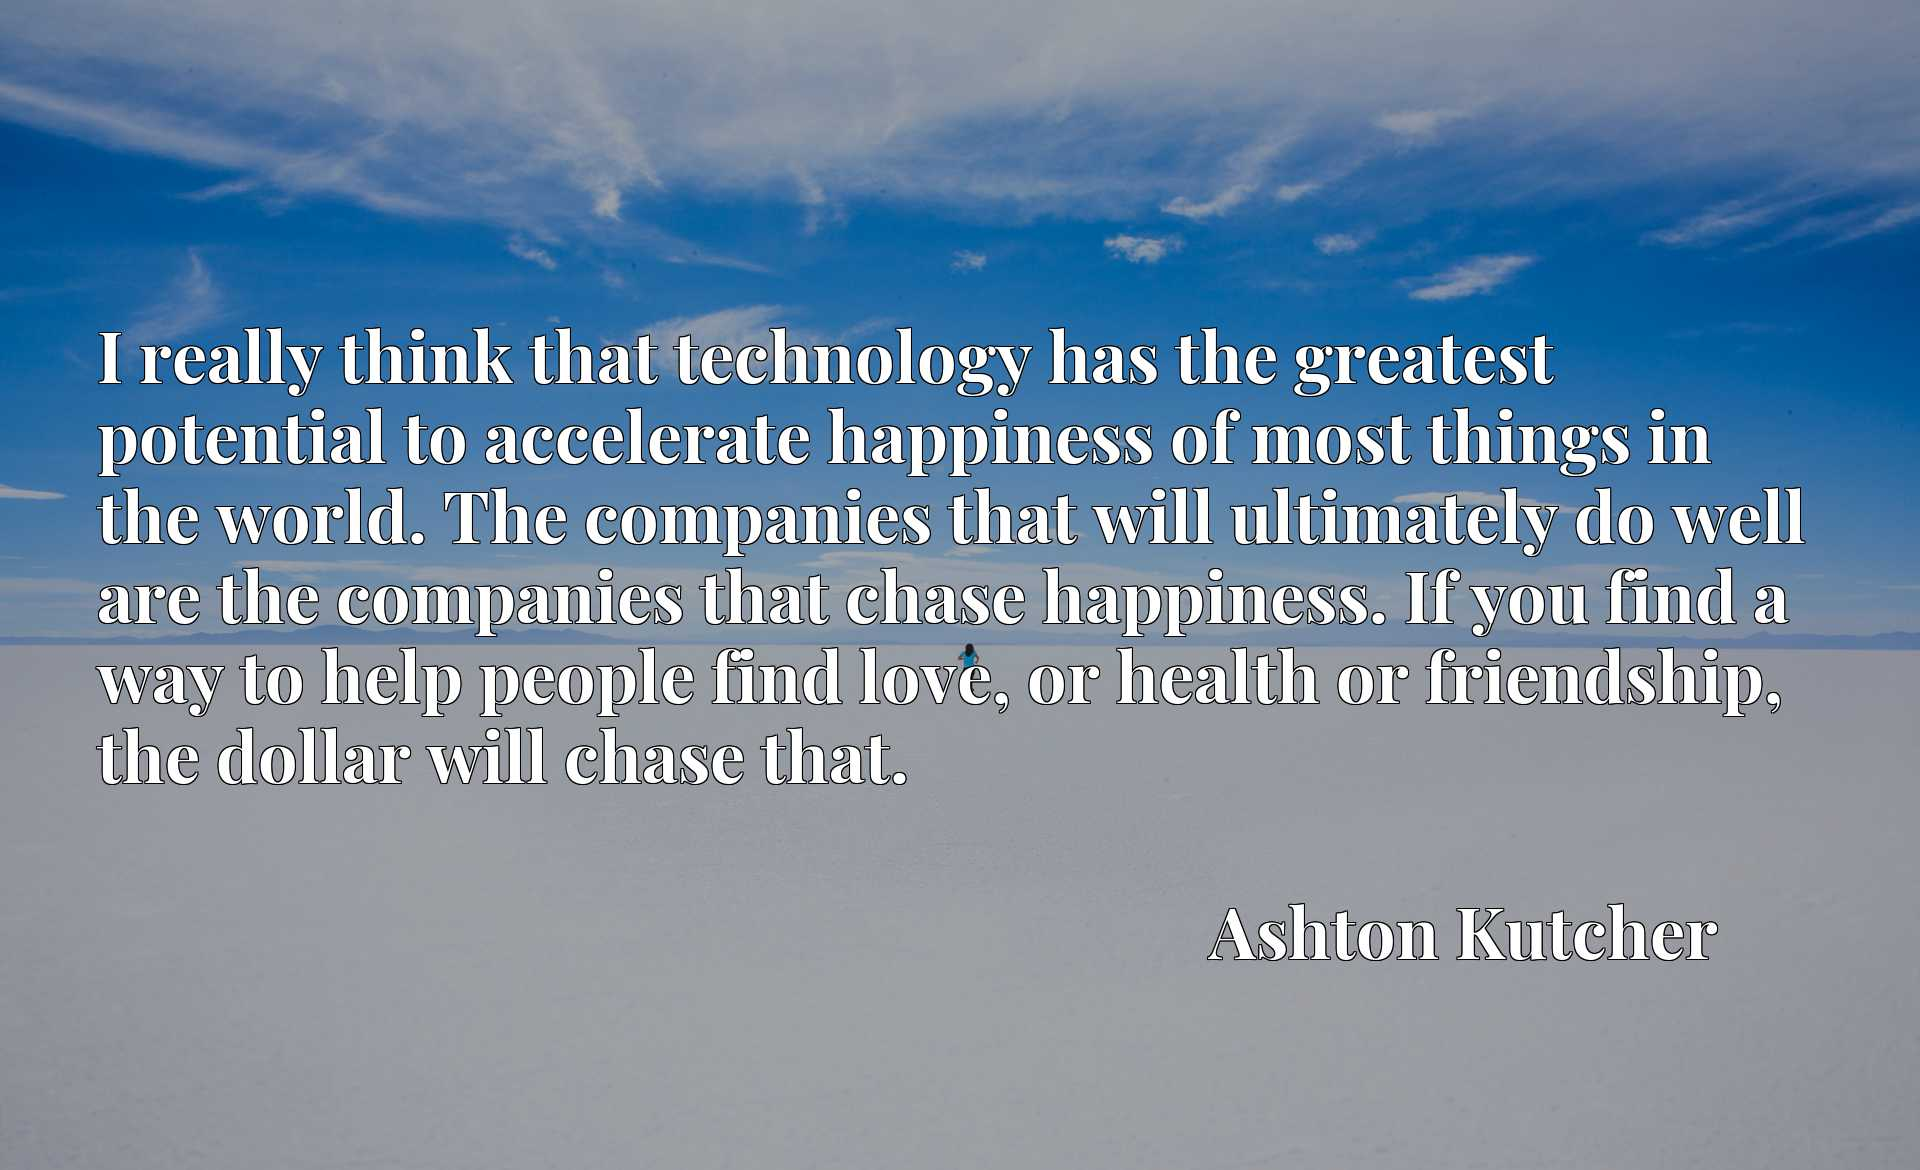 I really think that technology has the greatest potential to accelerate happiness of most things in the world. The companies that will ultimately do well are the companies that chase happiness. If you find a way to help people find love, or health or friendship, the dollar will chase that.